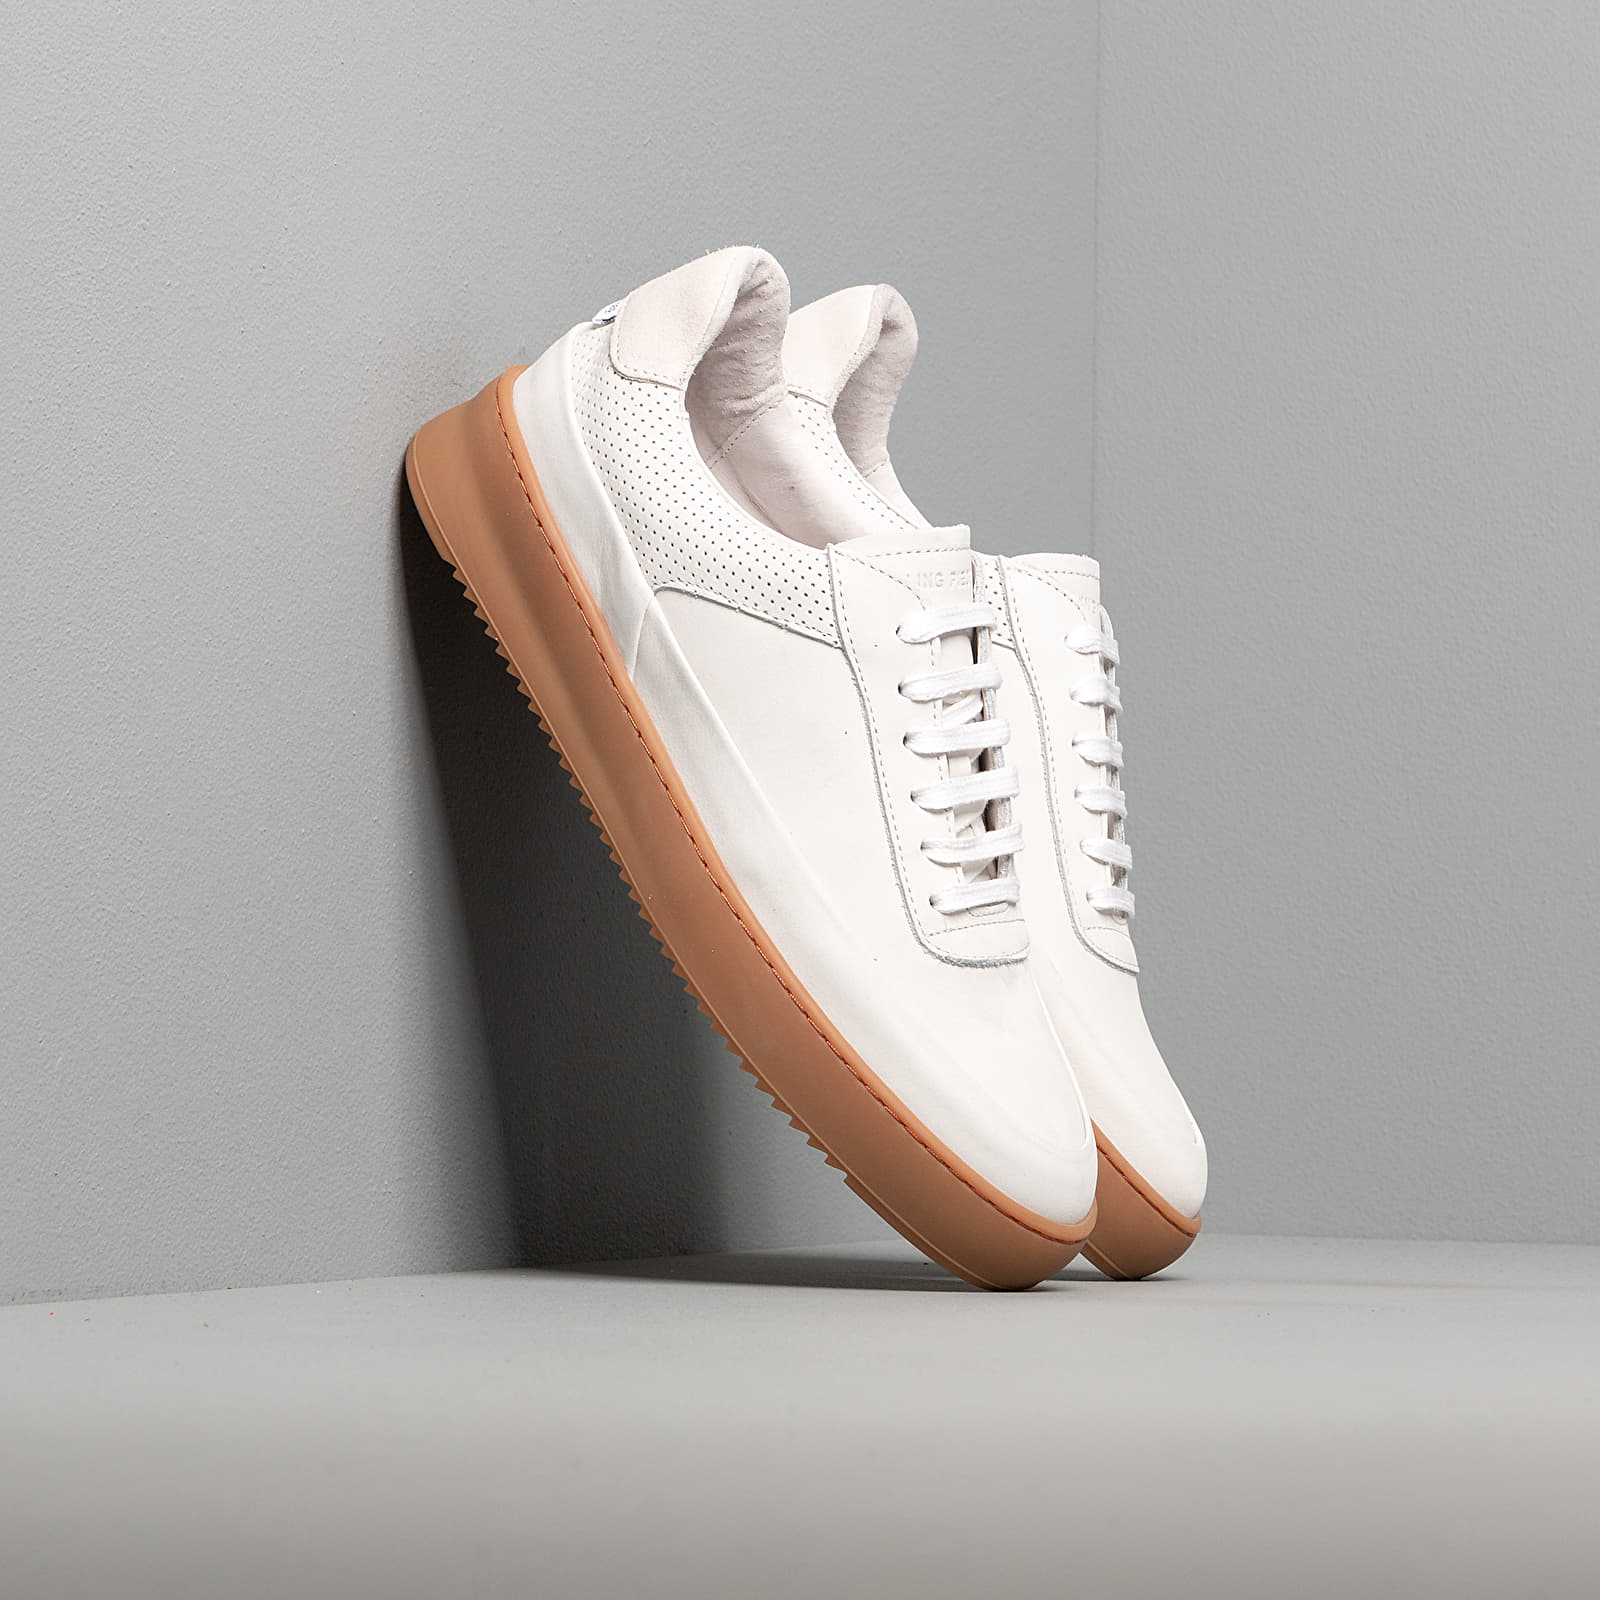 Muške tenisice Filling Pieces Mono Ripple Gum White